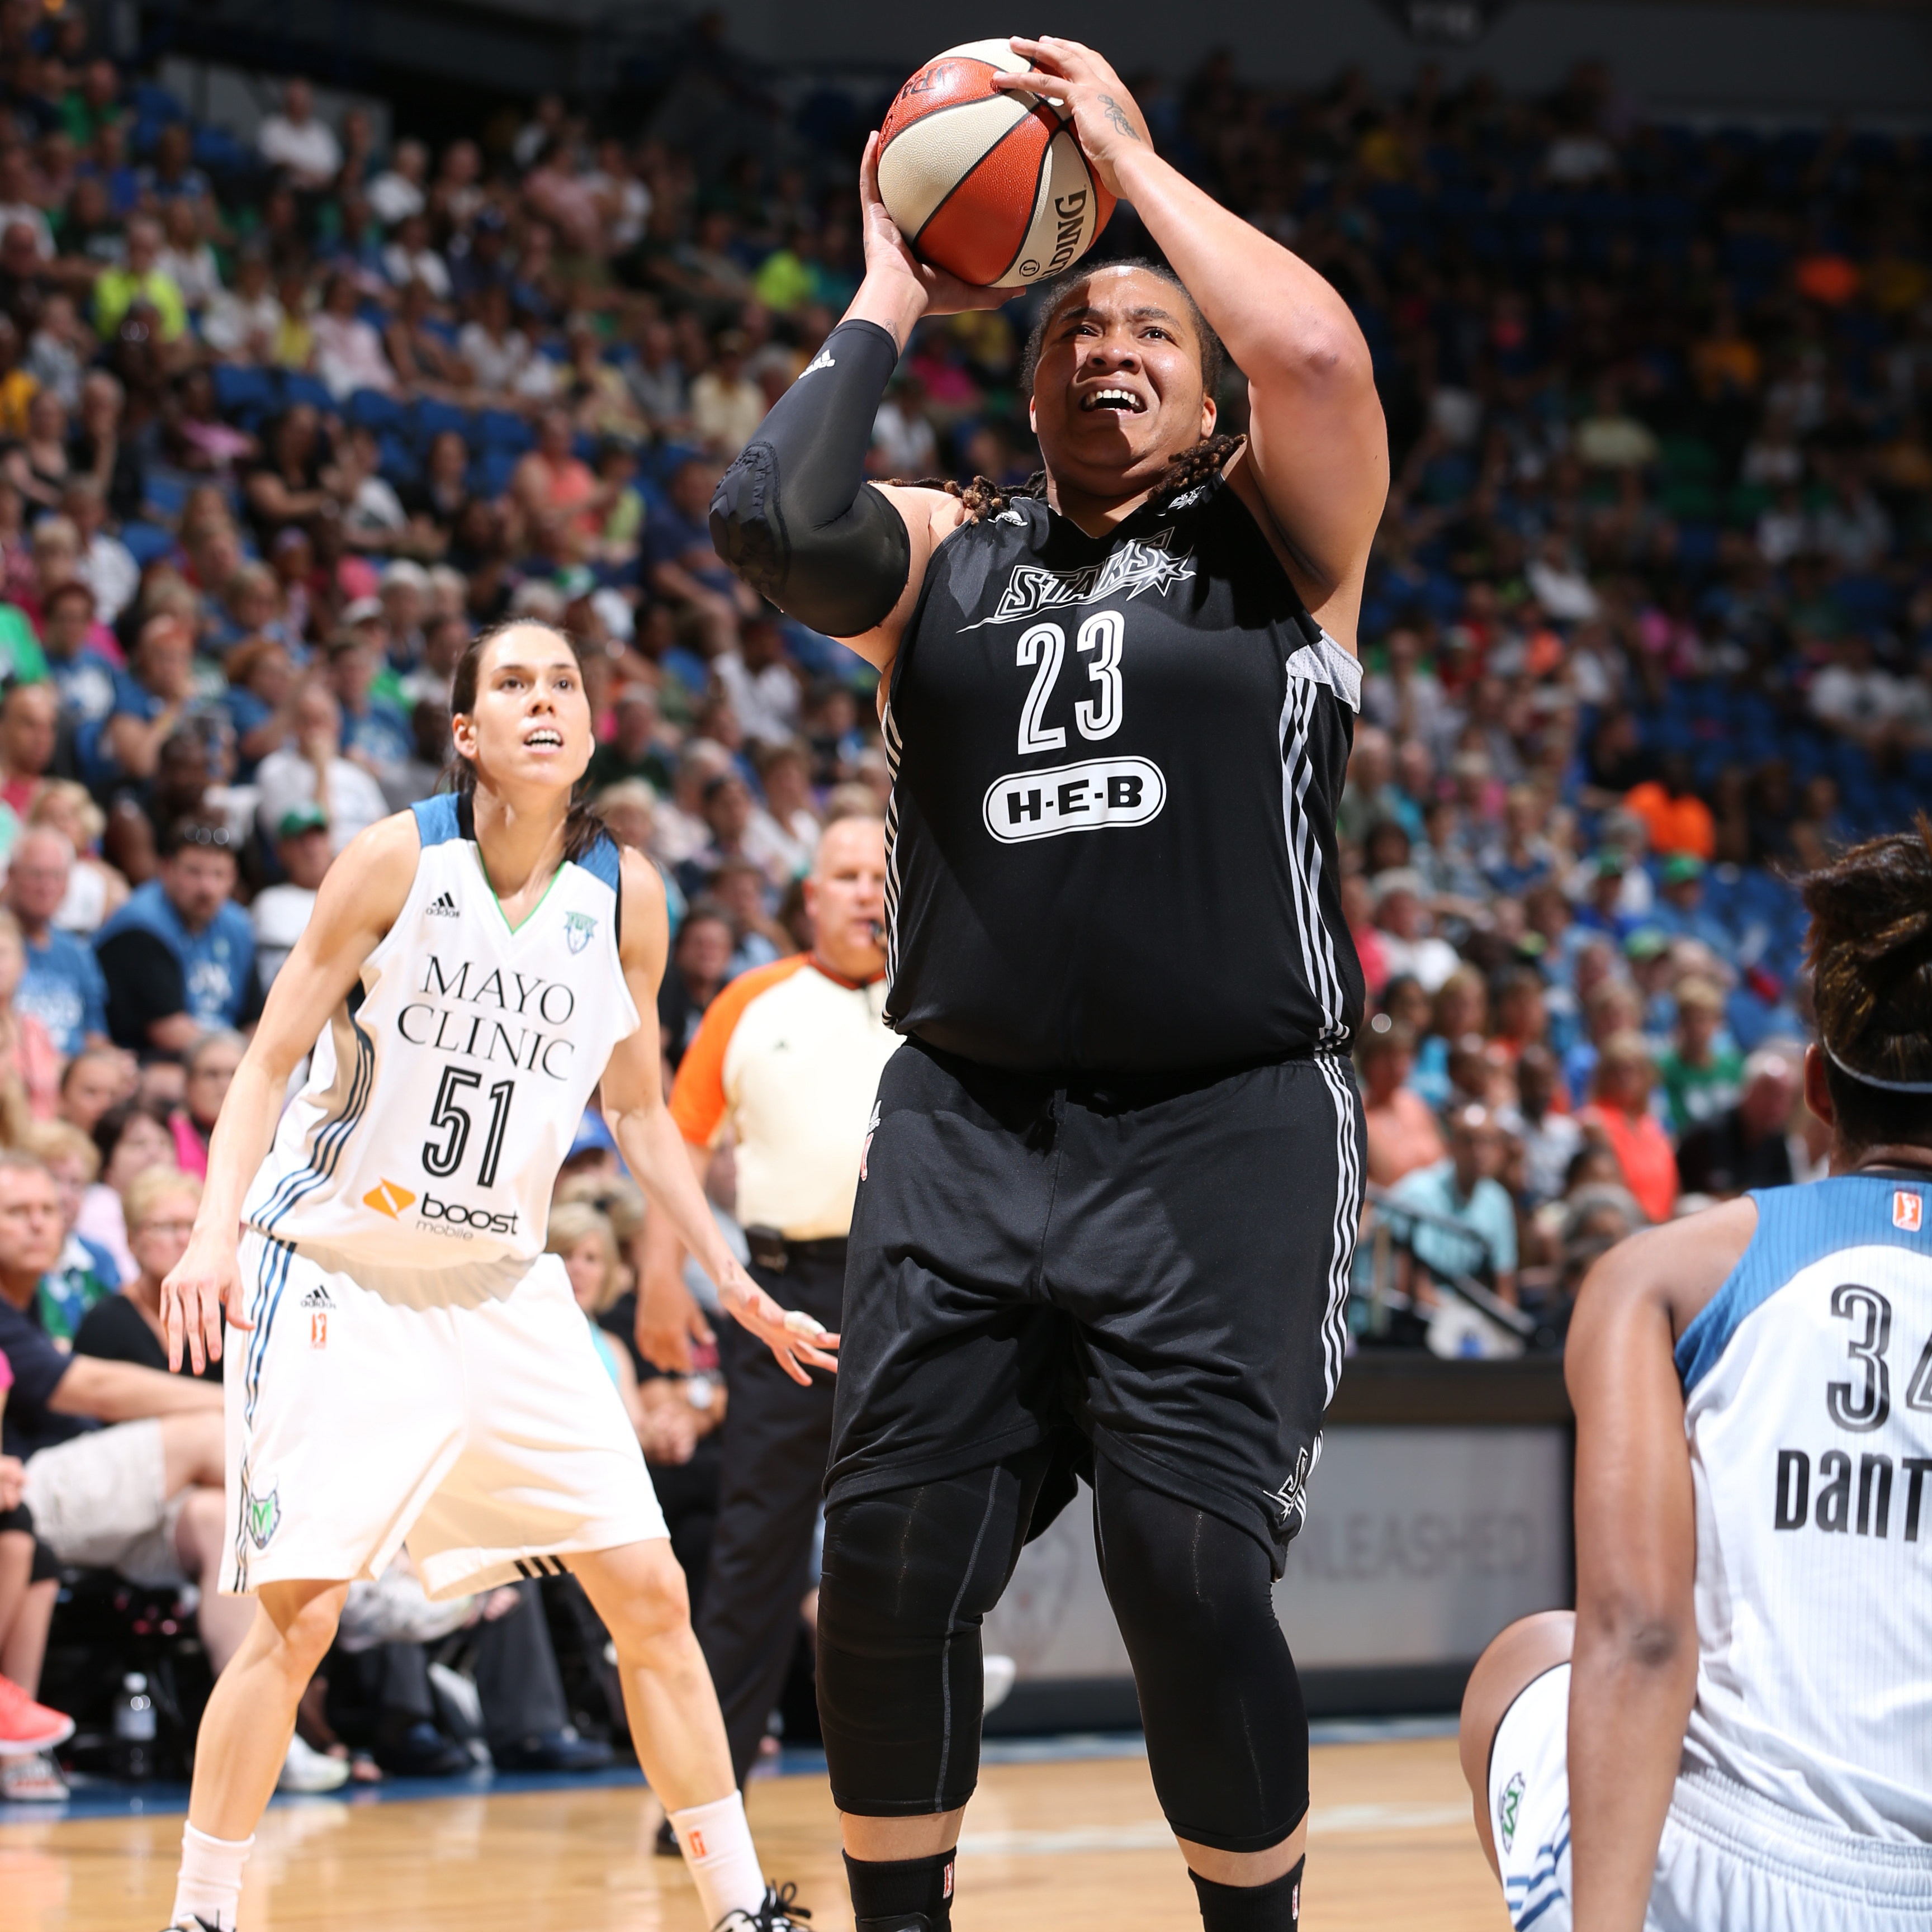 Stars center Danielle Adams steadied San Antonio, as best she could anyways, finishing with nine points on 3-of-5 (60 percent) shooting to go with her three rebounds.